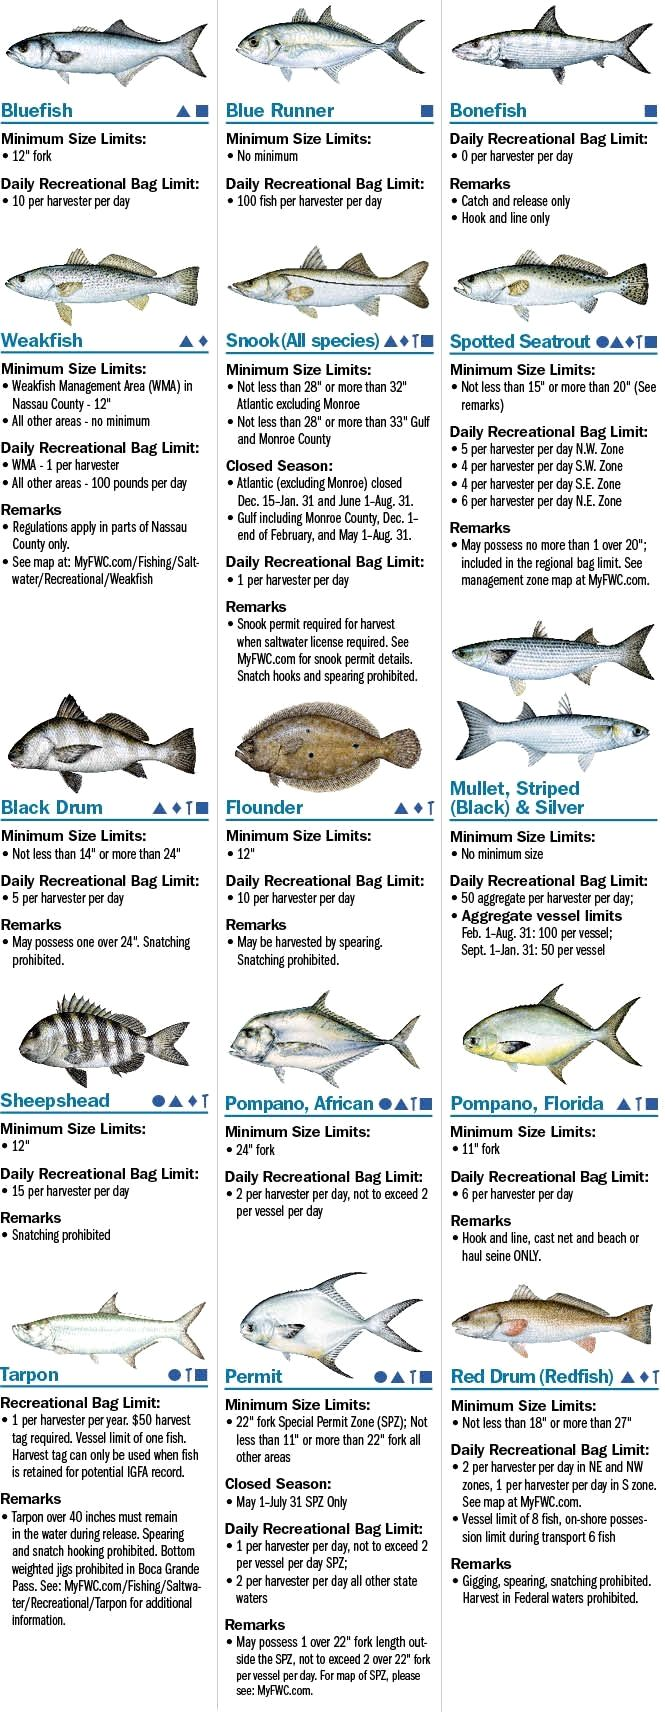 Salt Water Fishing Fishing For Entertainment Is A Great Hobby When You Are Together With Friends Or Family Saltwater Fishing Fishing Tips Salt Water Fishing